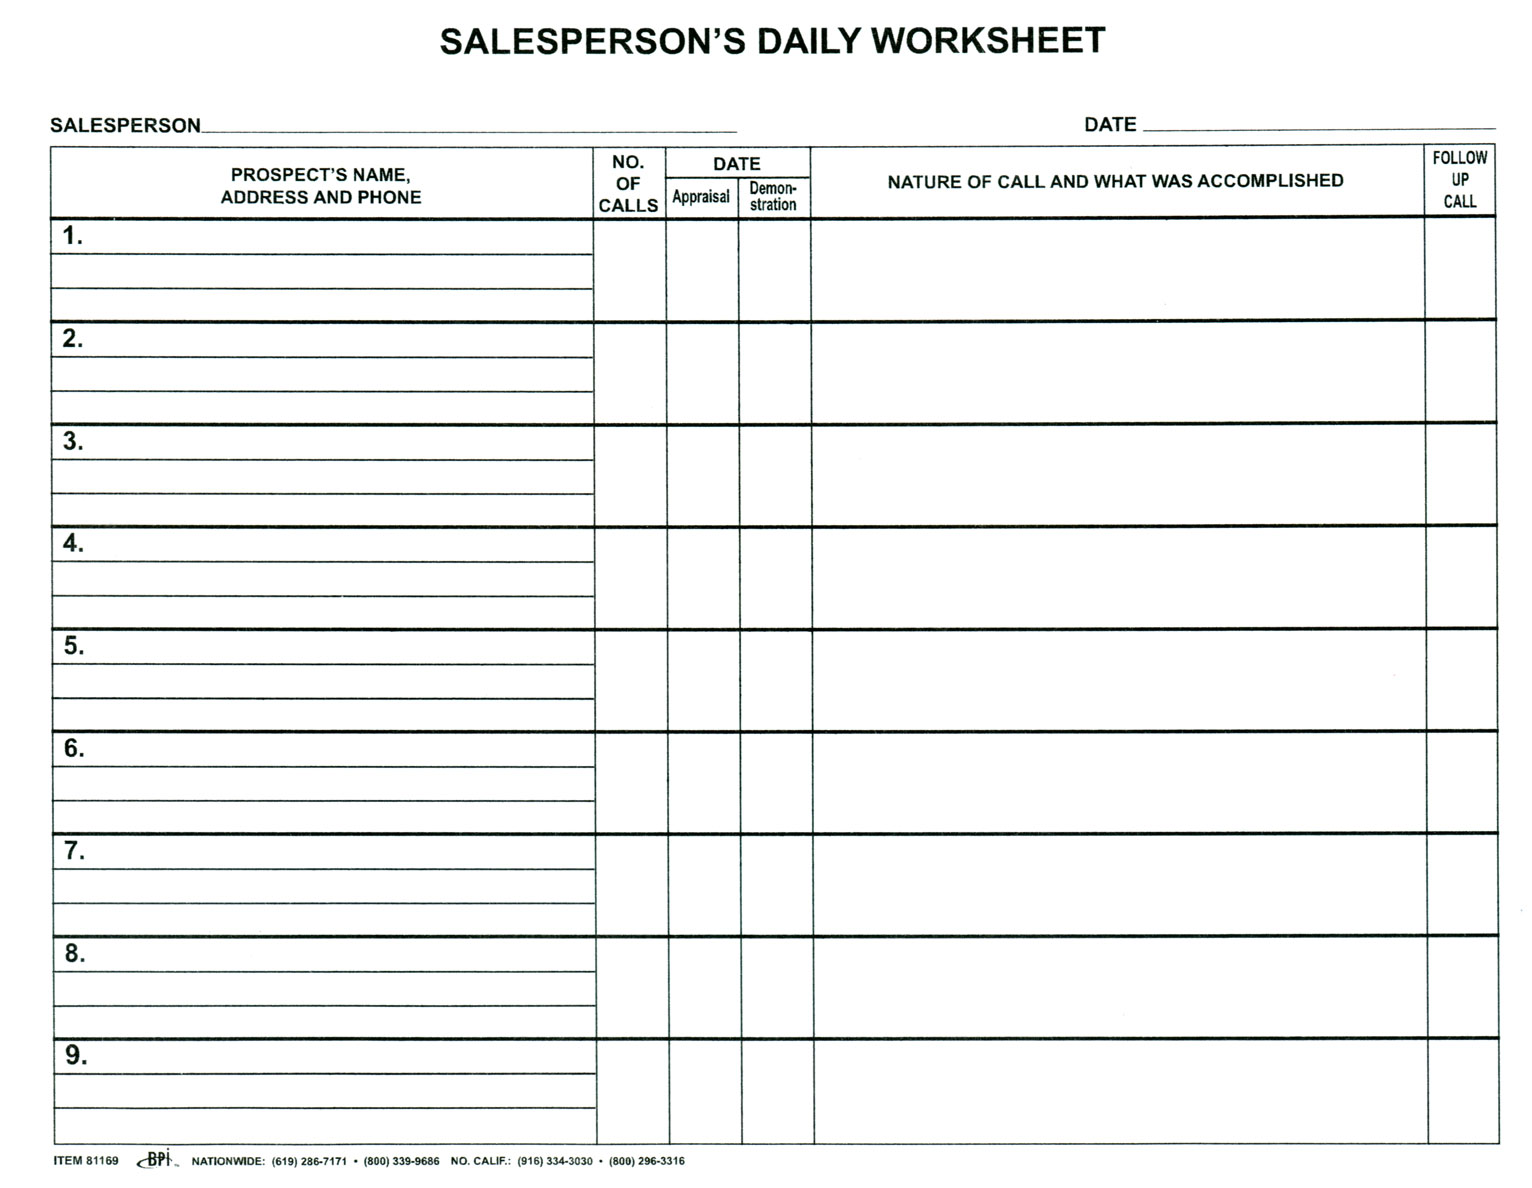 Foursquare Sales Worksheet